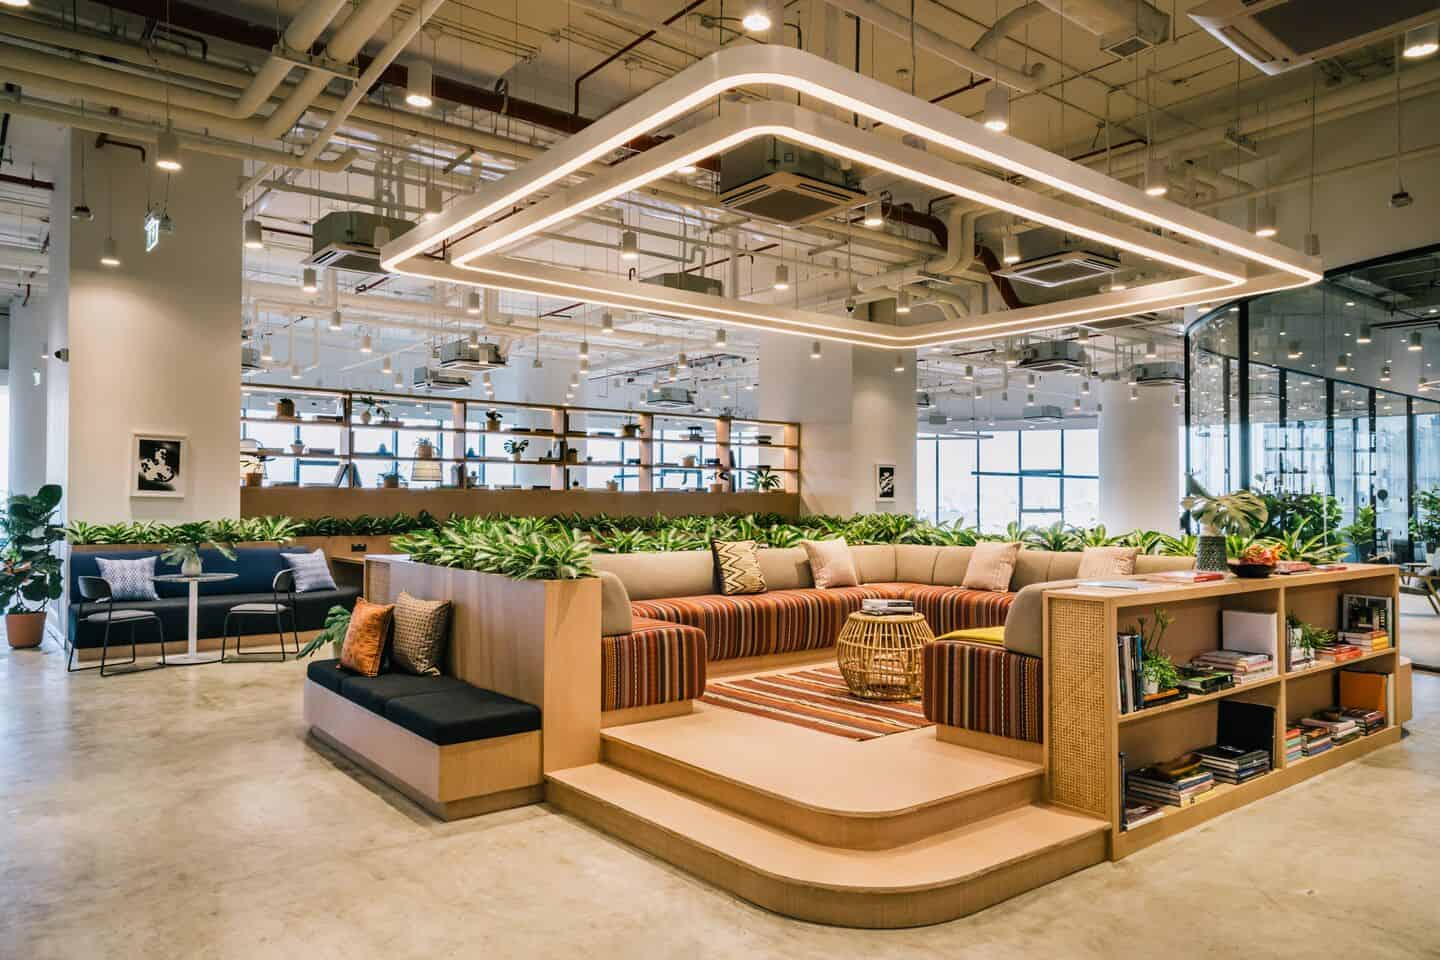 What A Wework Interior Designer Can Teach Us About Our Workspace